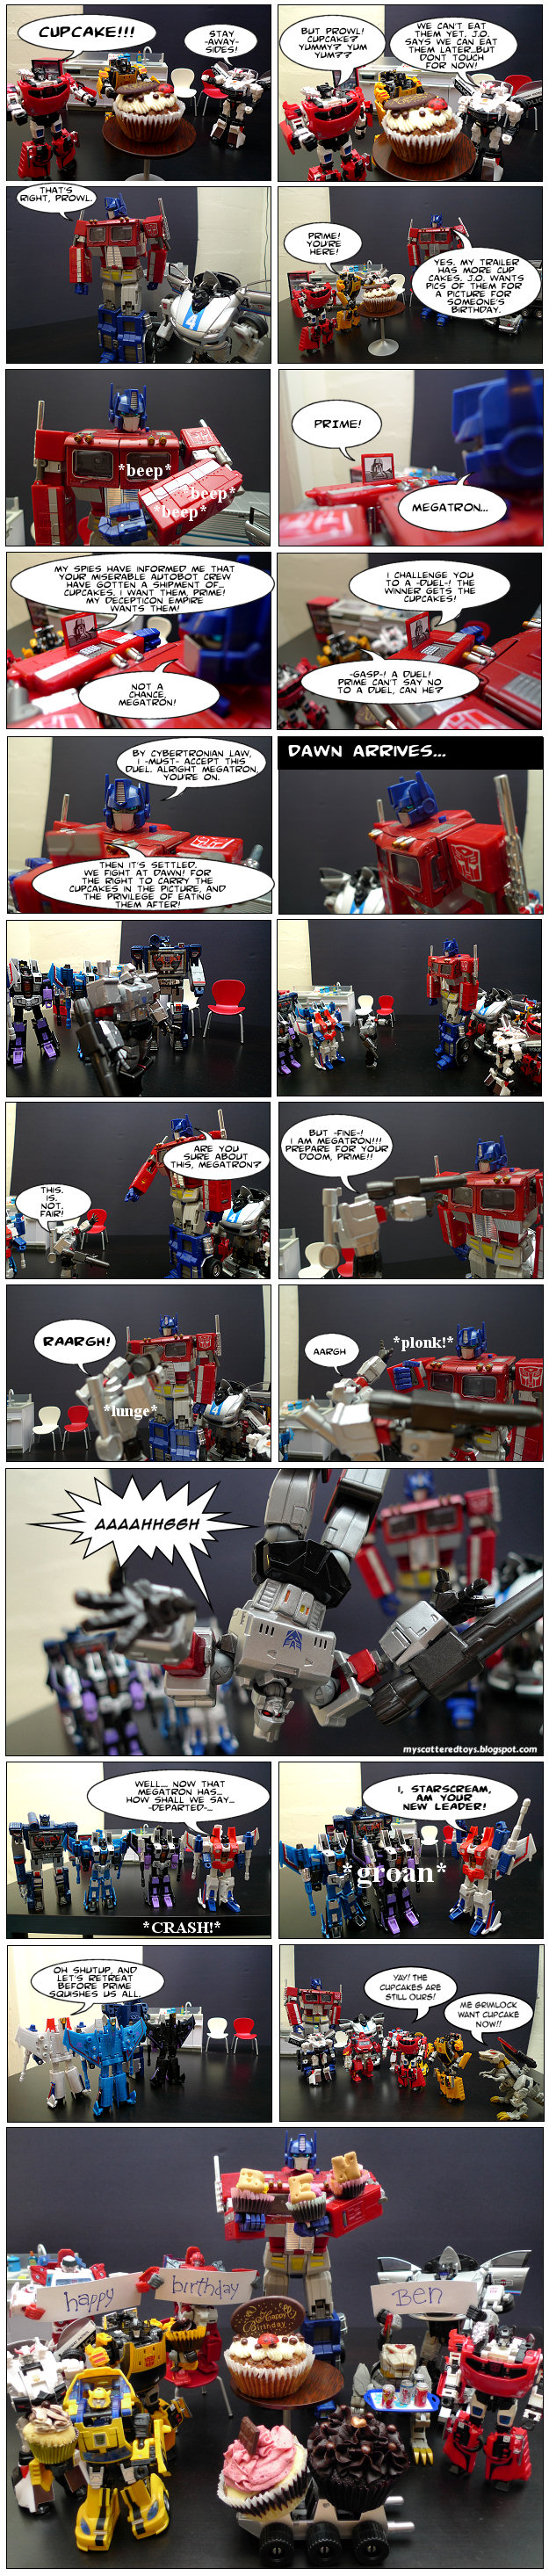 duel for the cupcakes - my toys are alive 09 transformers fan comics featuring megatron duel prime